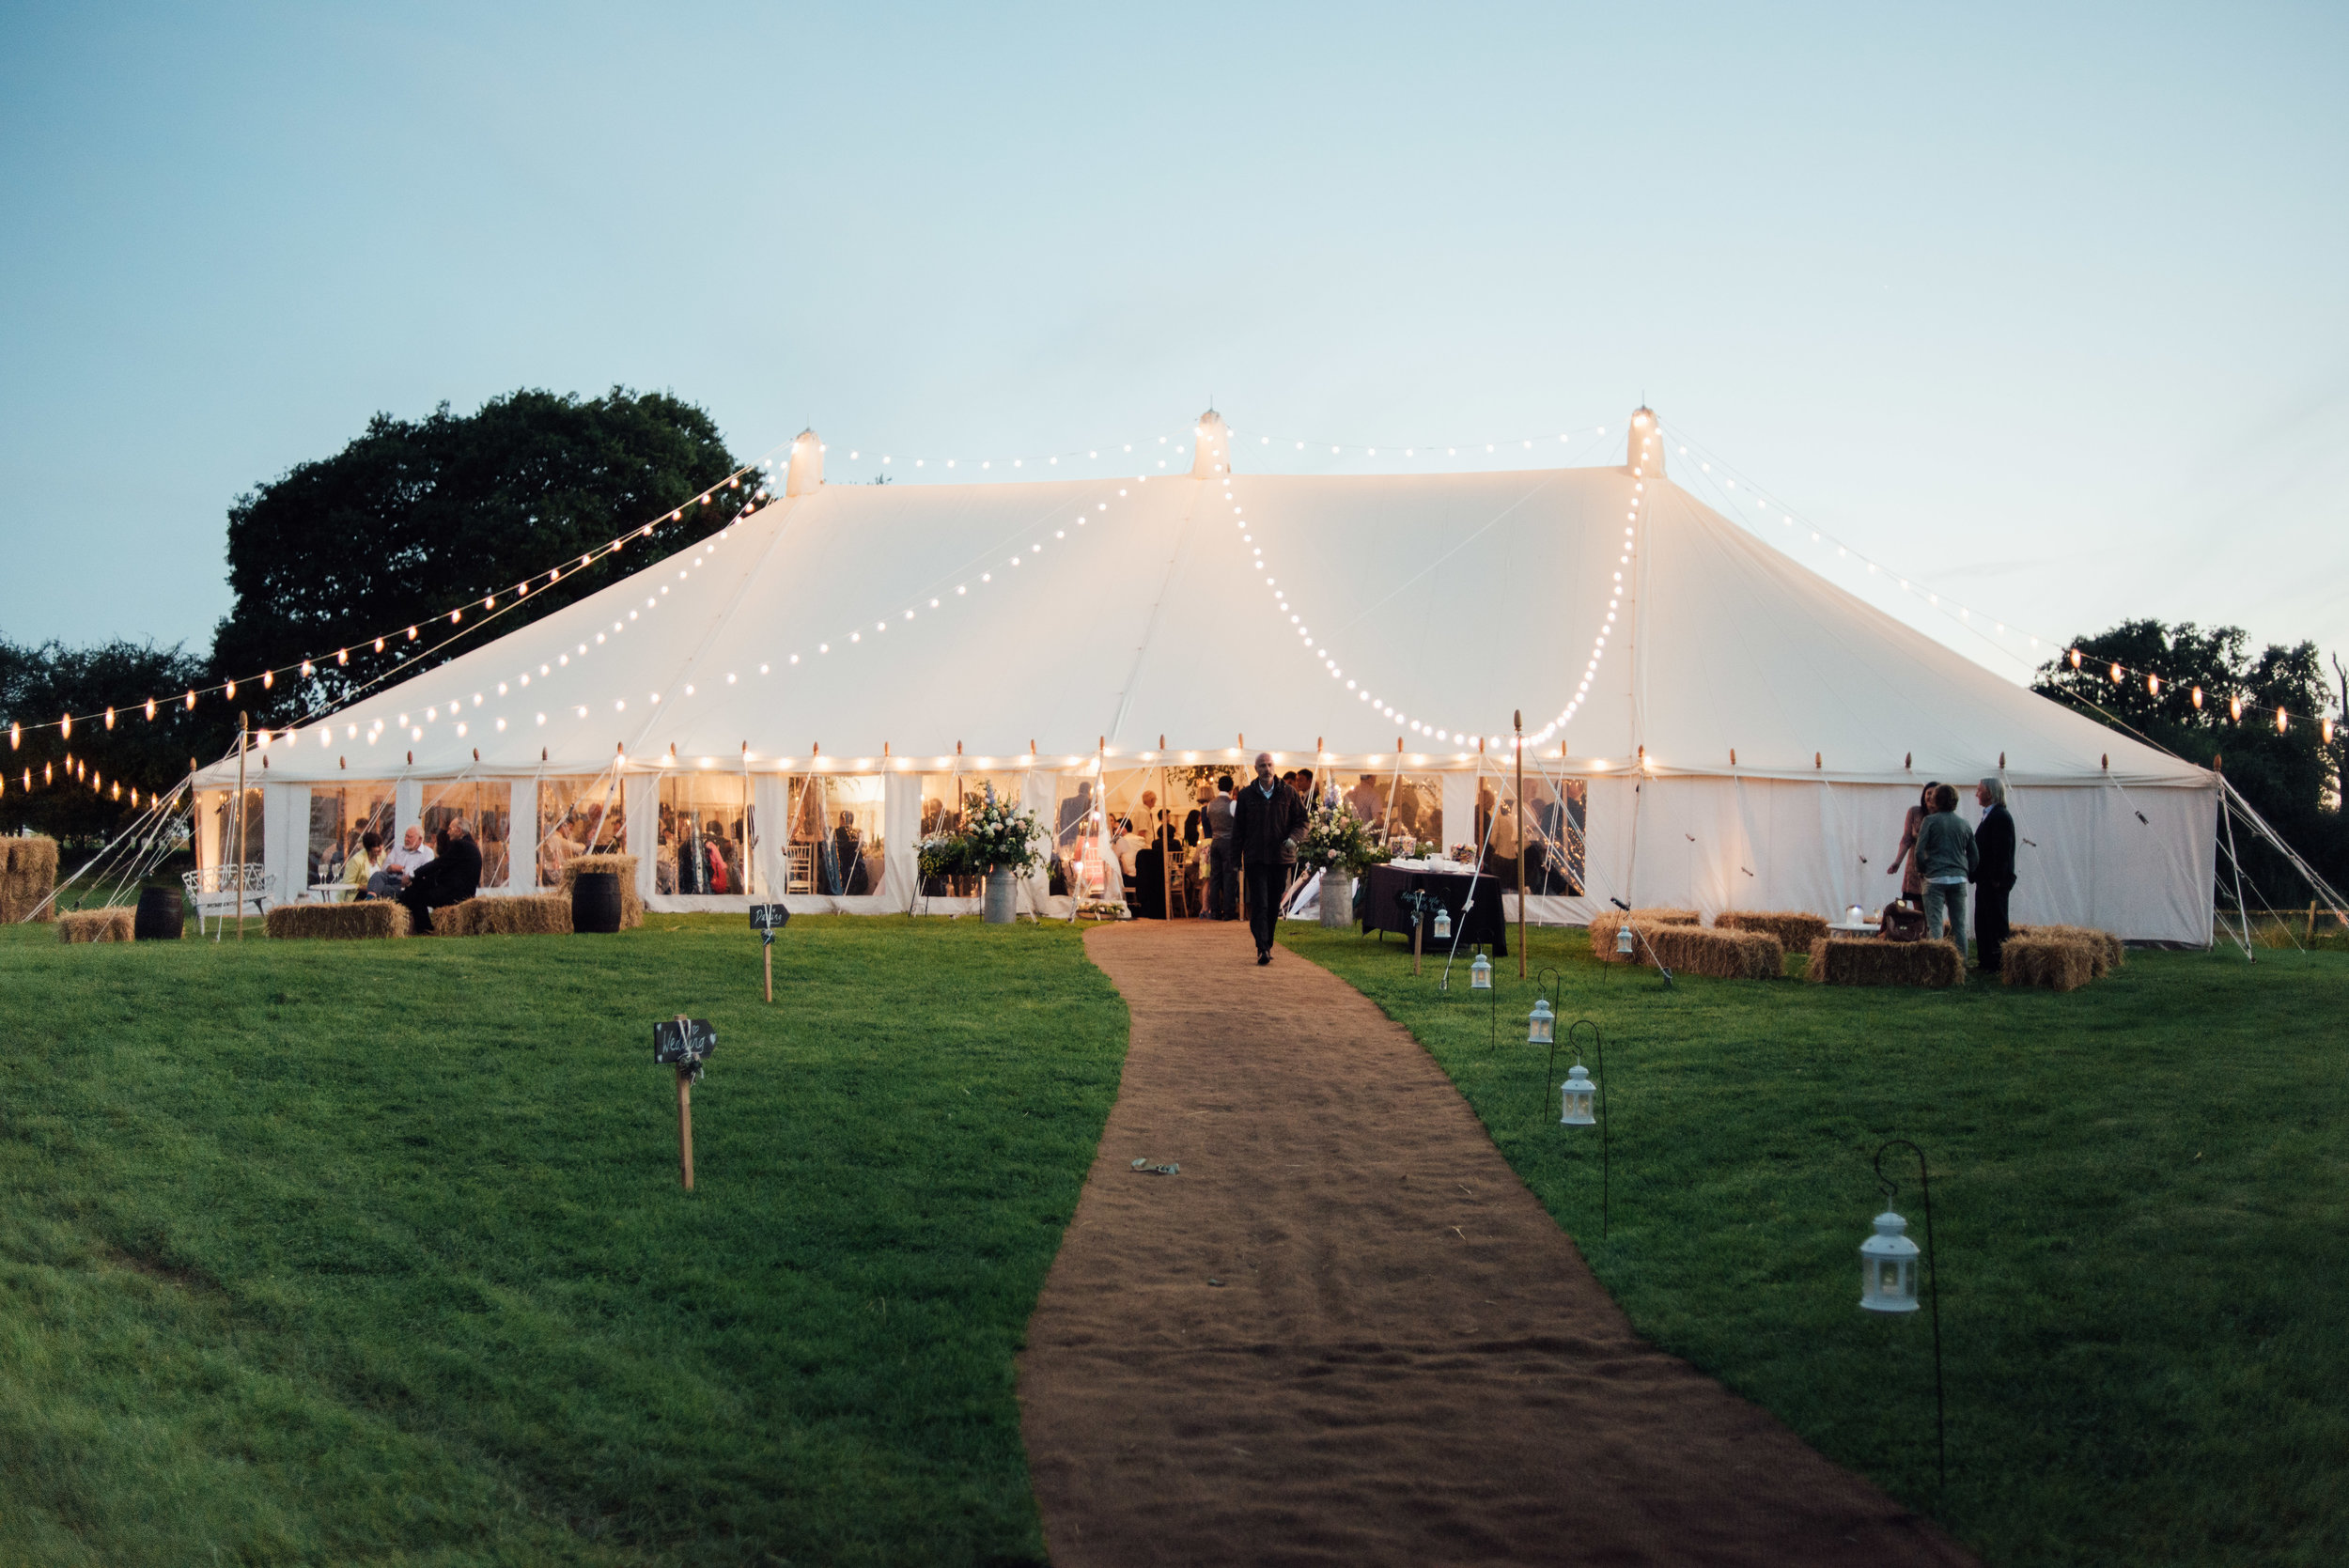 tents'n events - www.tentsnevents.co.uk